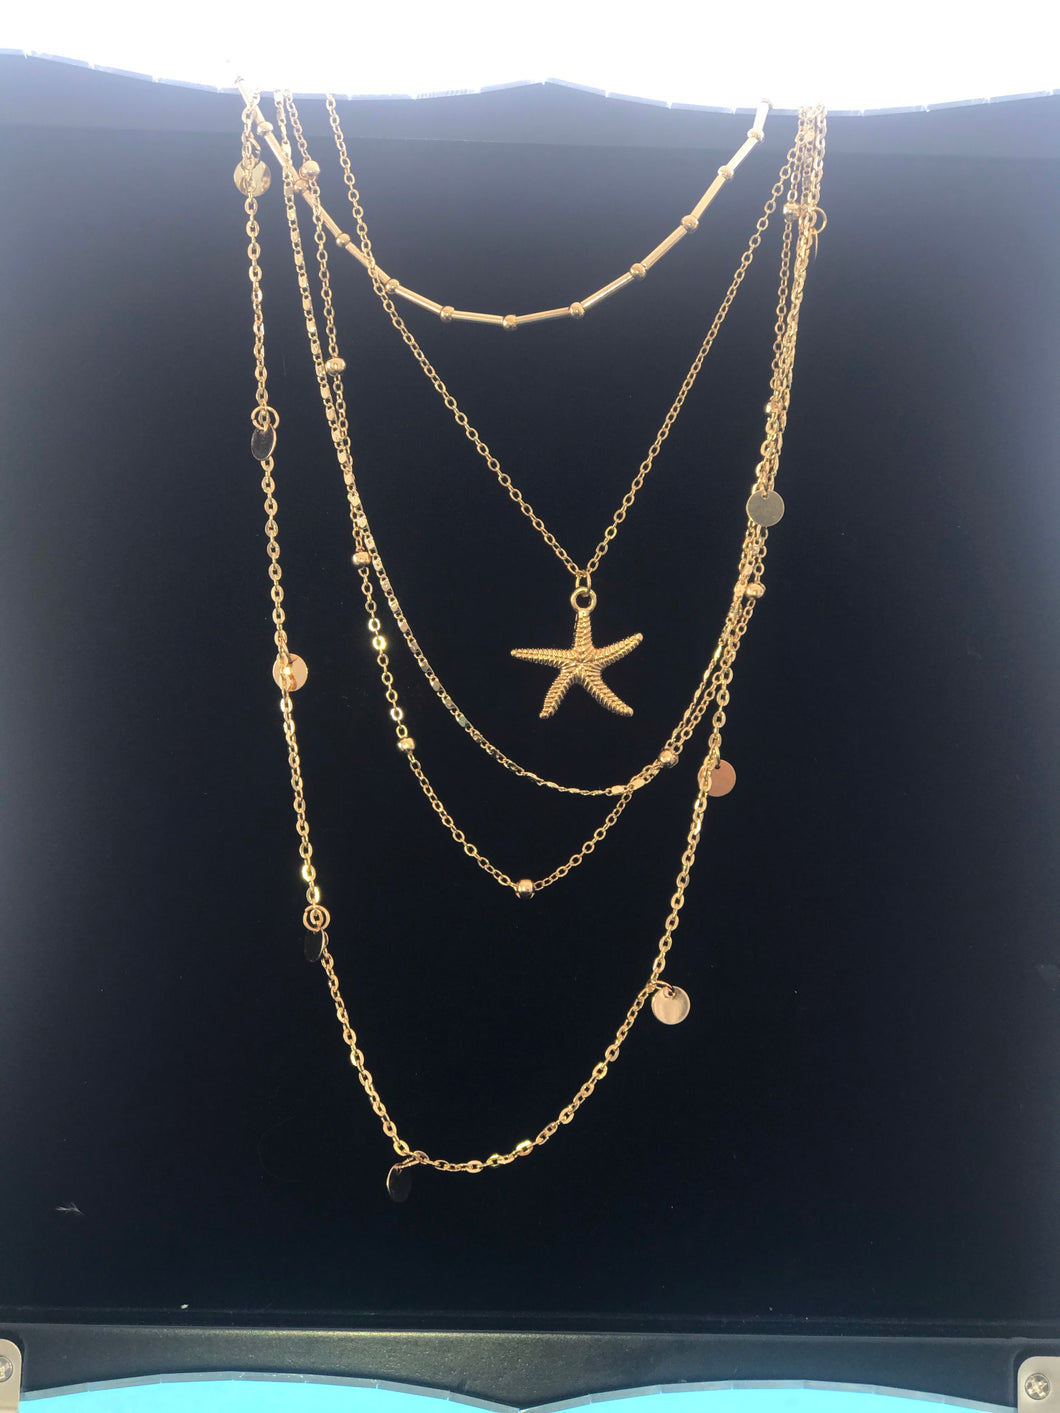 Five Tiered Gold Necklace with Starfish